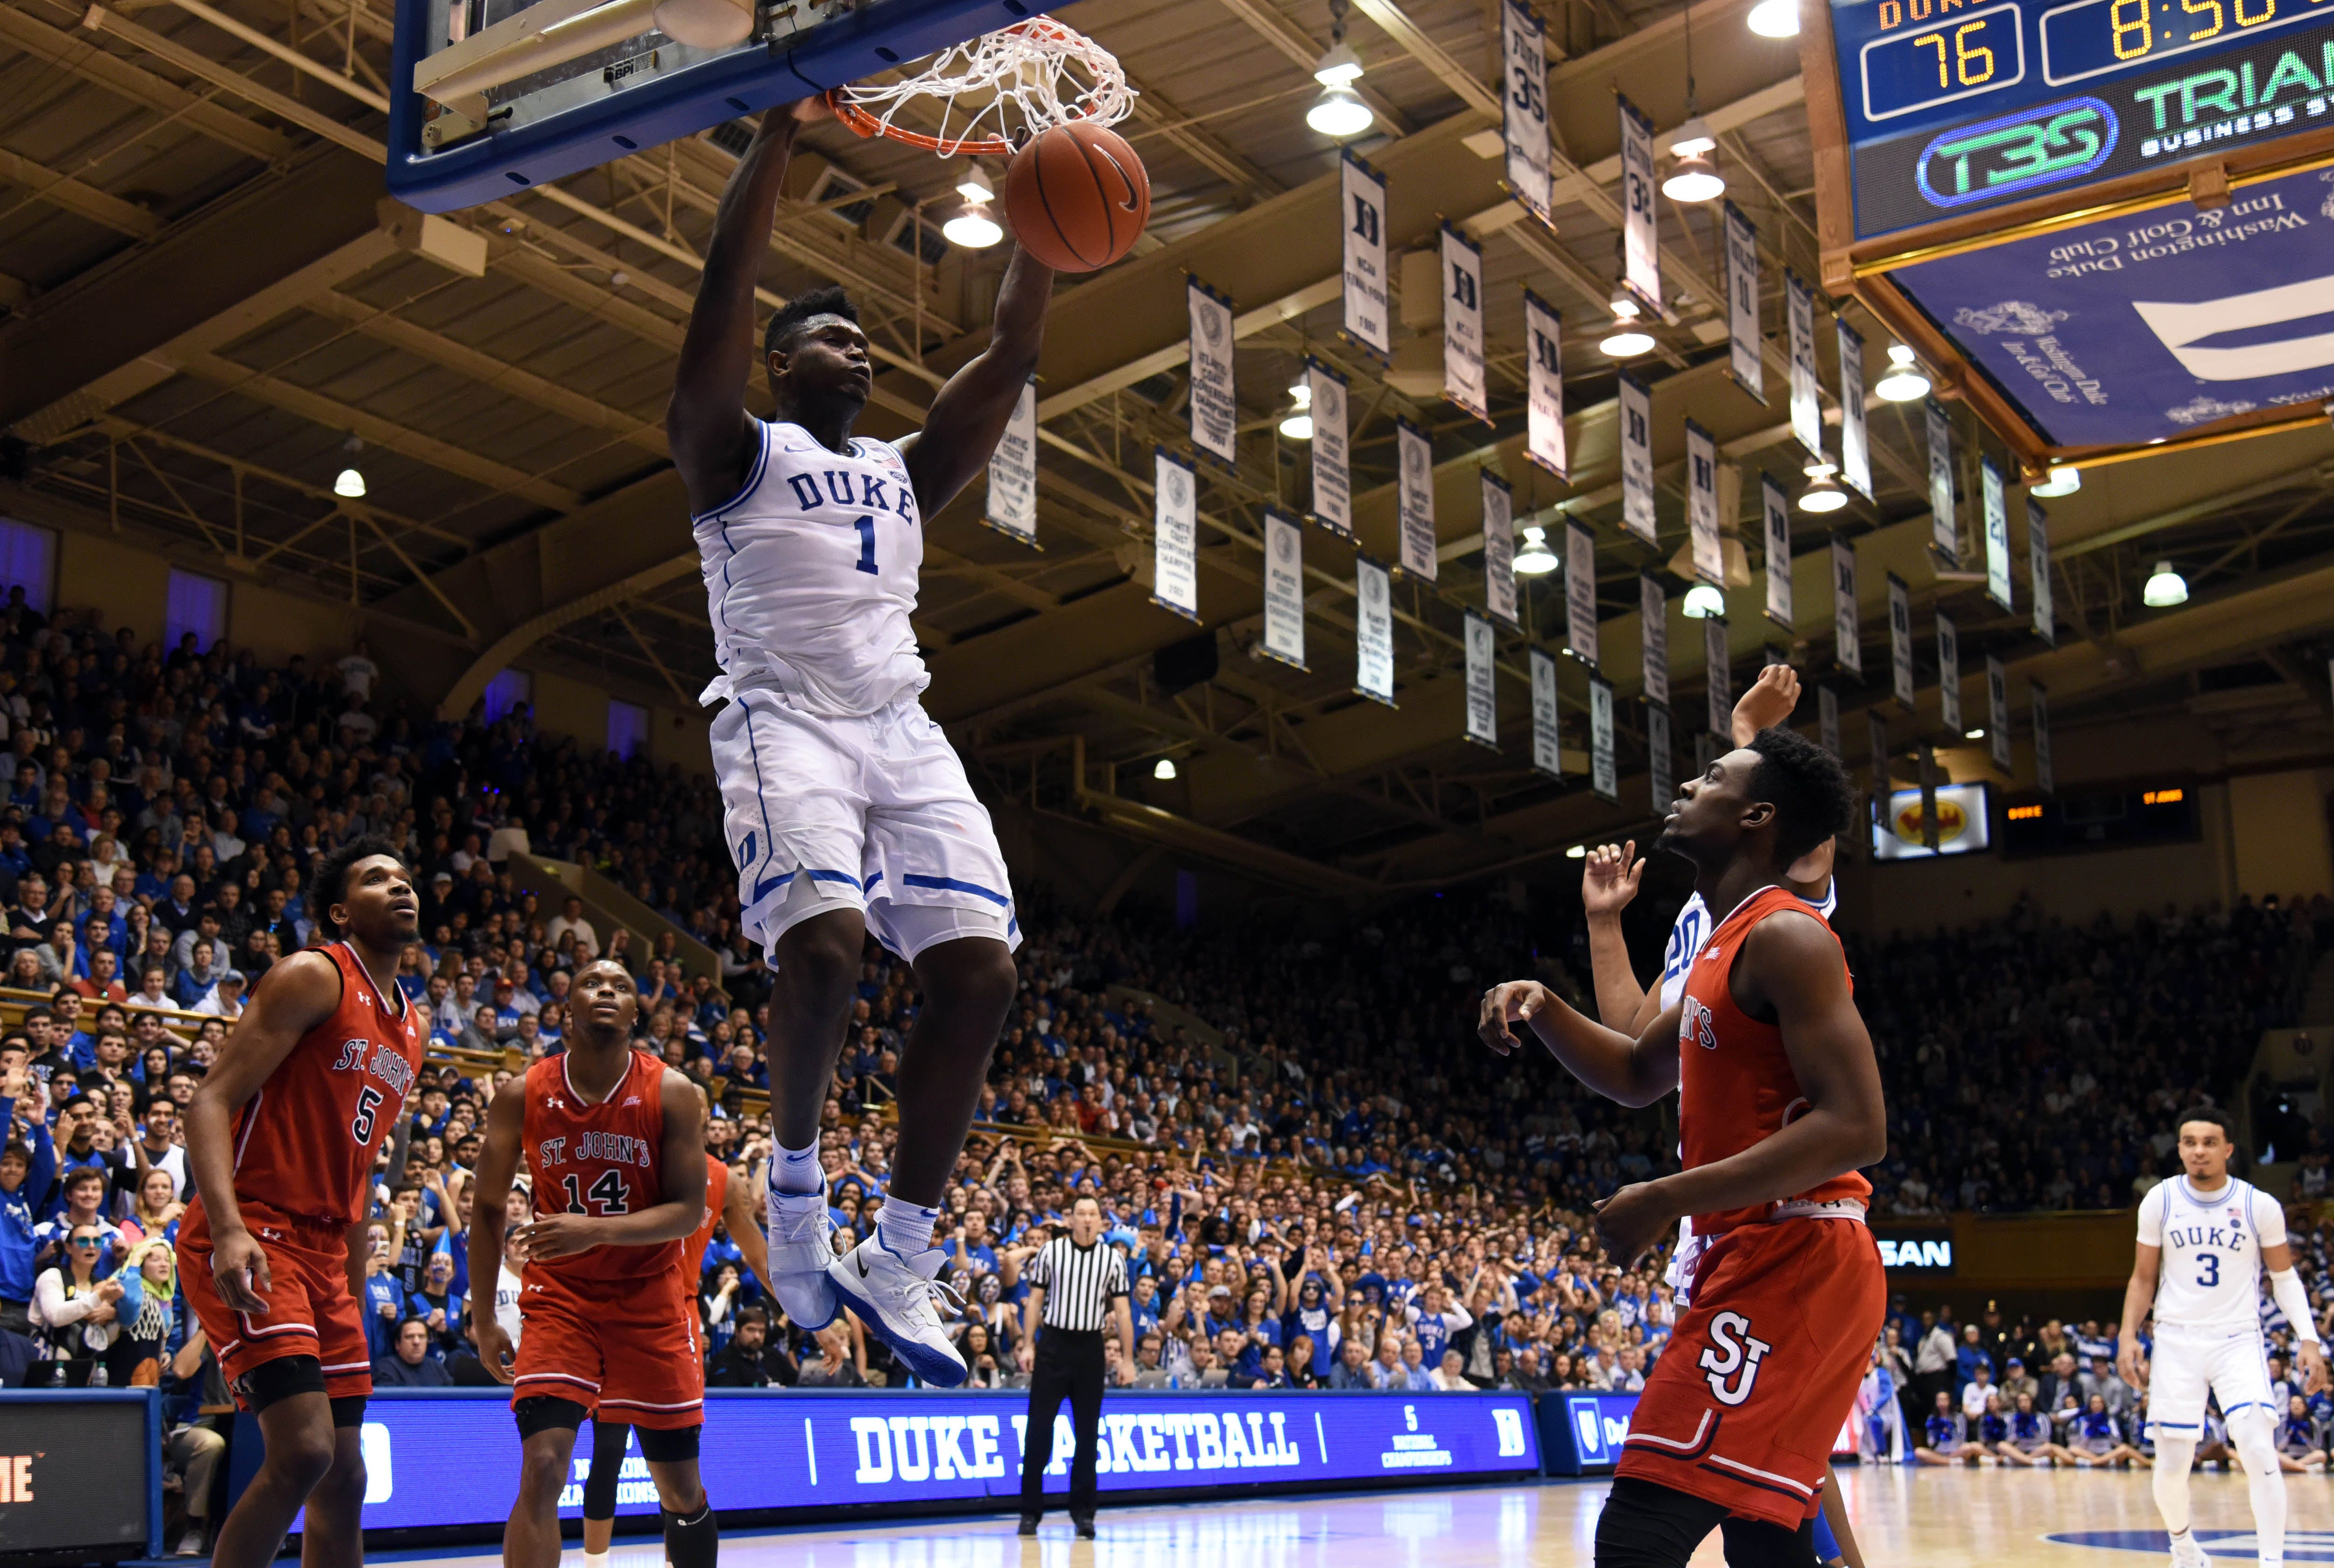 Duke forward Zion Williamson dunks in the midst of the 2nd 1/2 in opposition to St. John's.